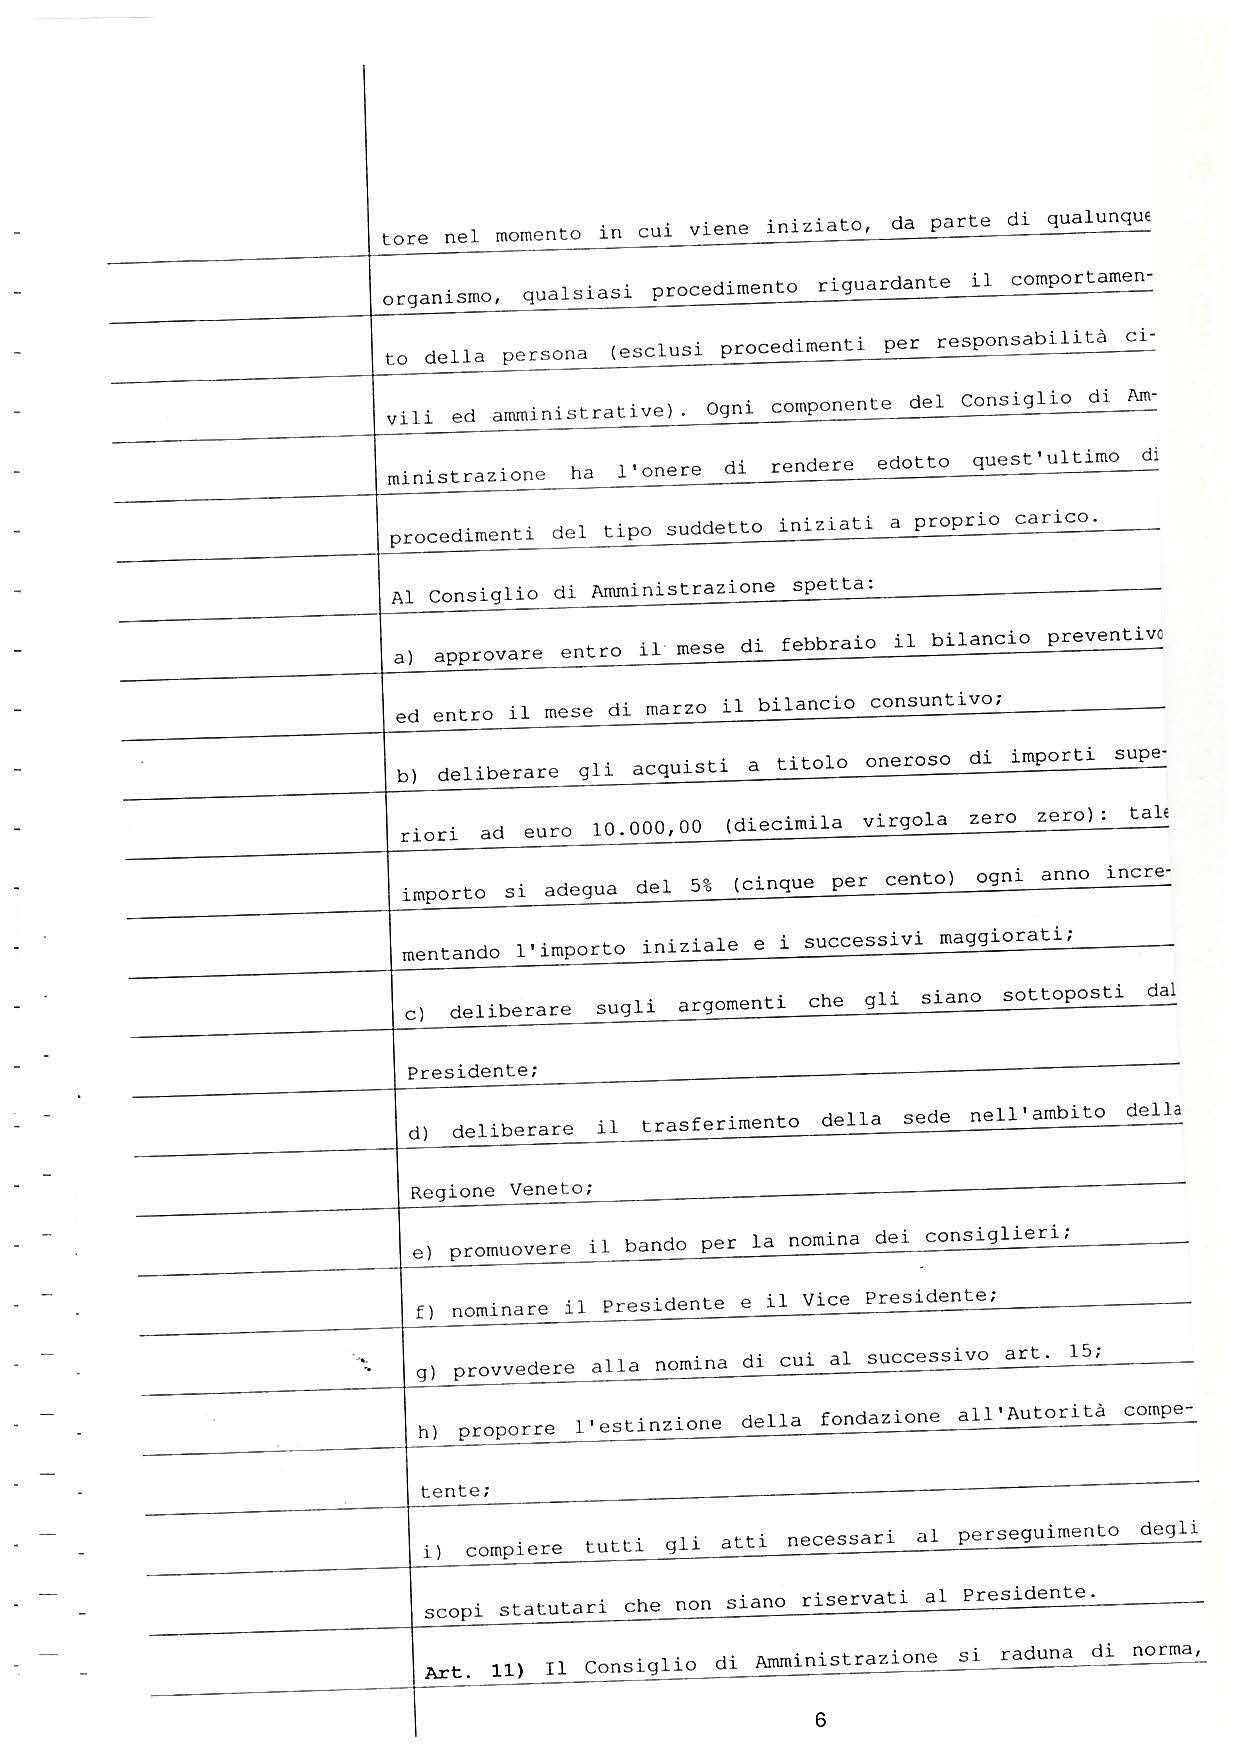 Scanned Document